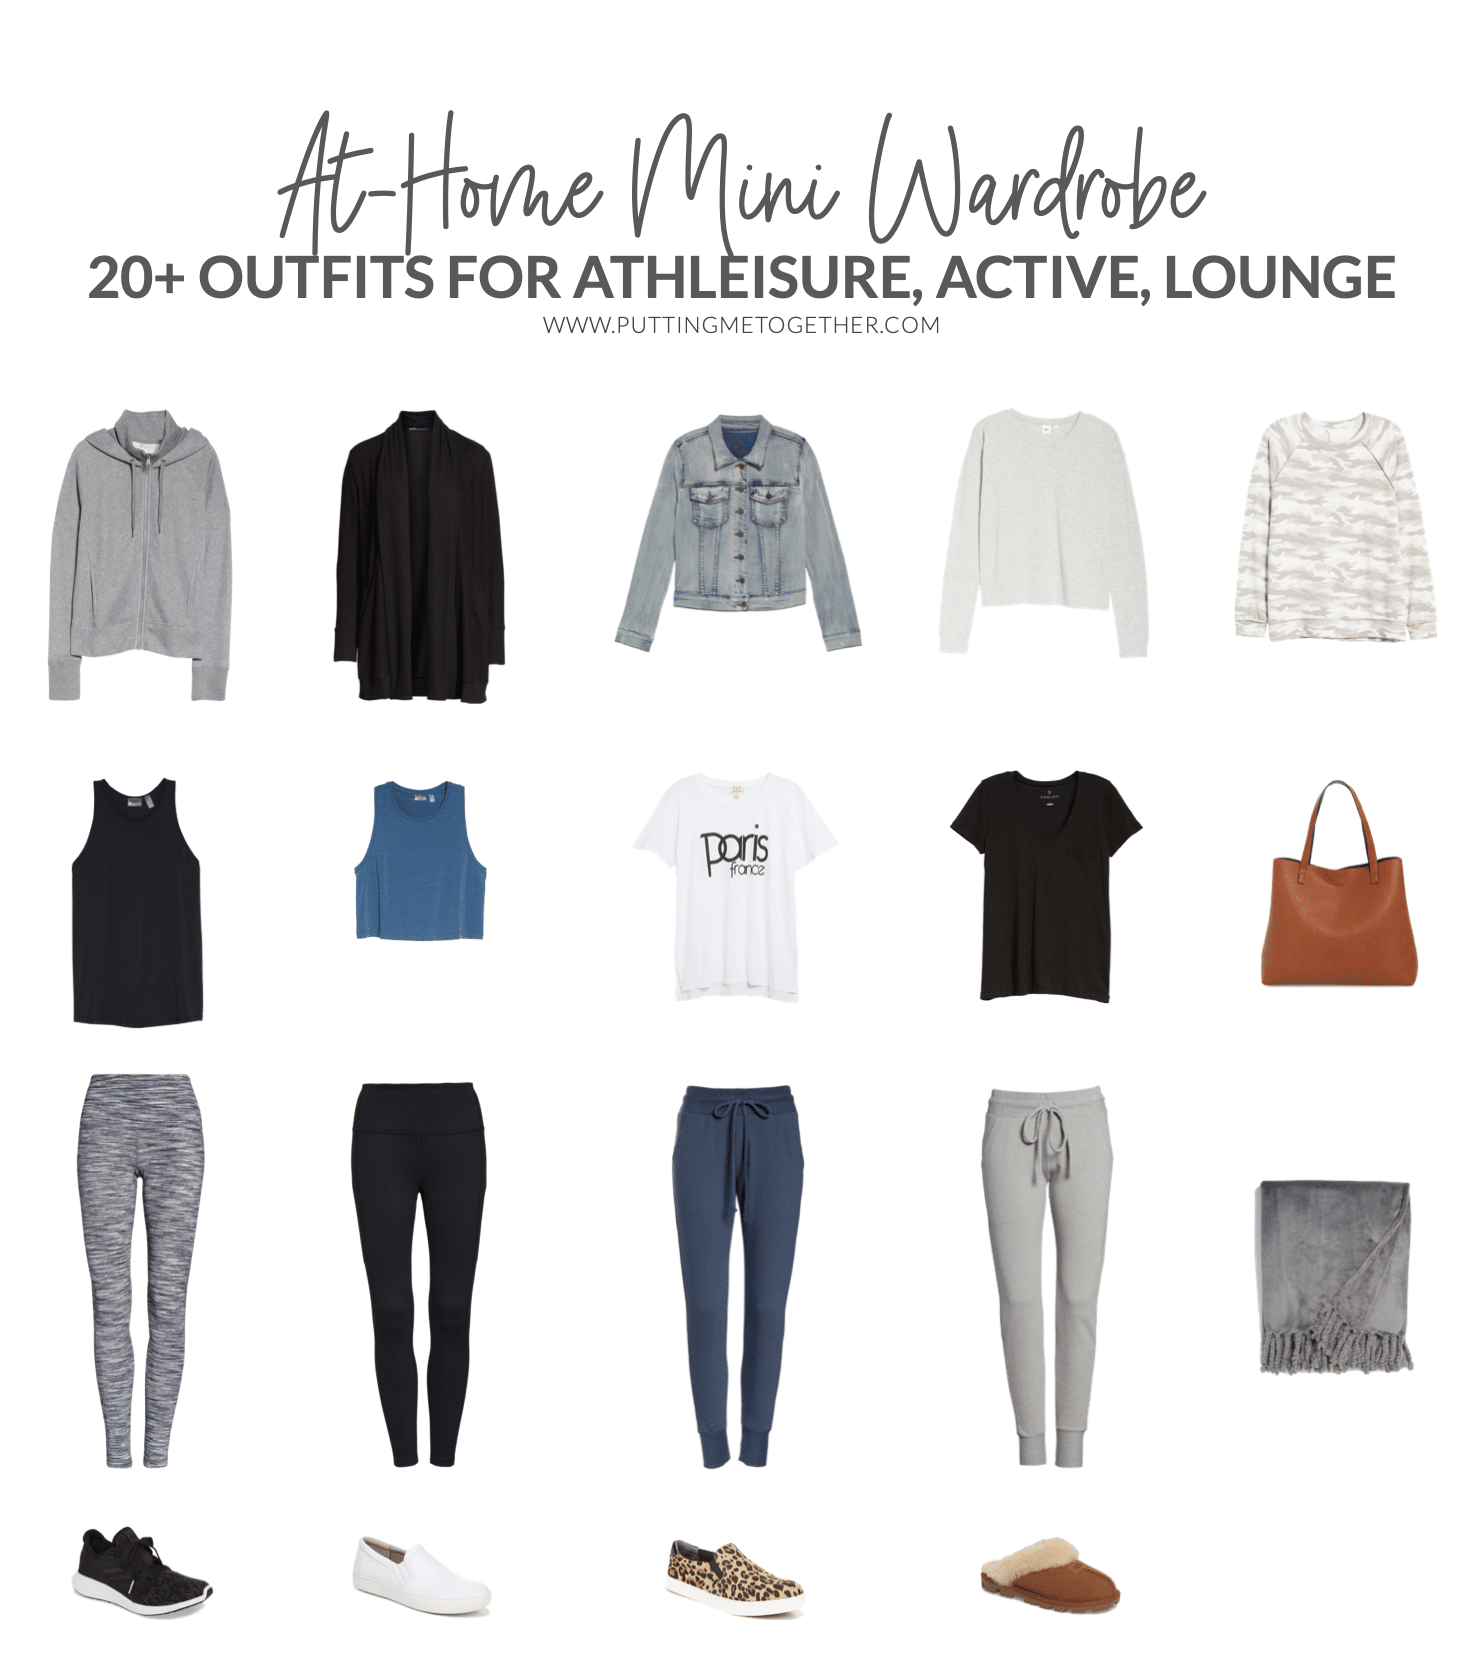 Comfy At-Home Wardrobe for Athleisure, Activewear, Loungewear - 20 Outfits